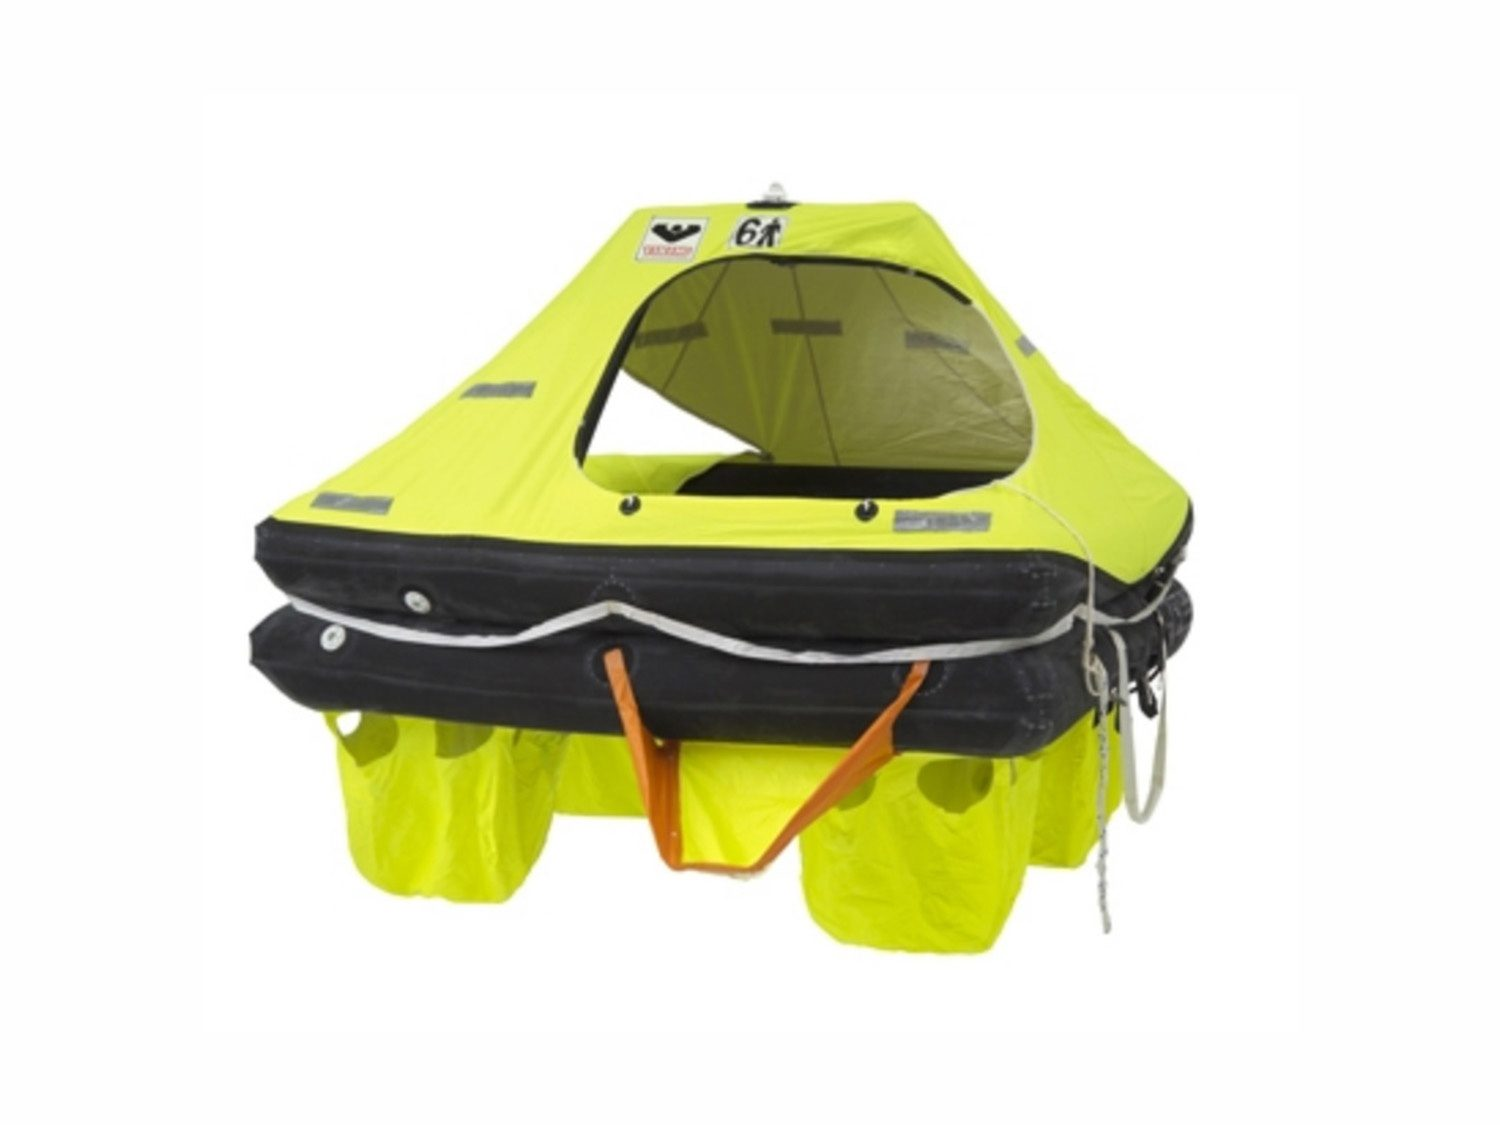 Example of a life raft